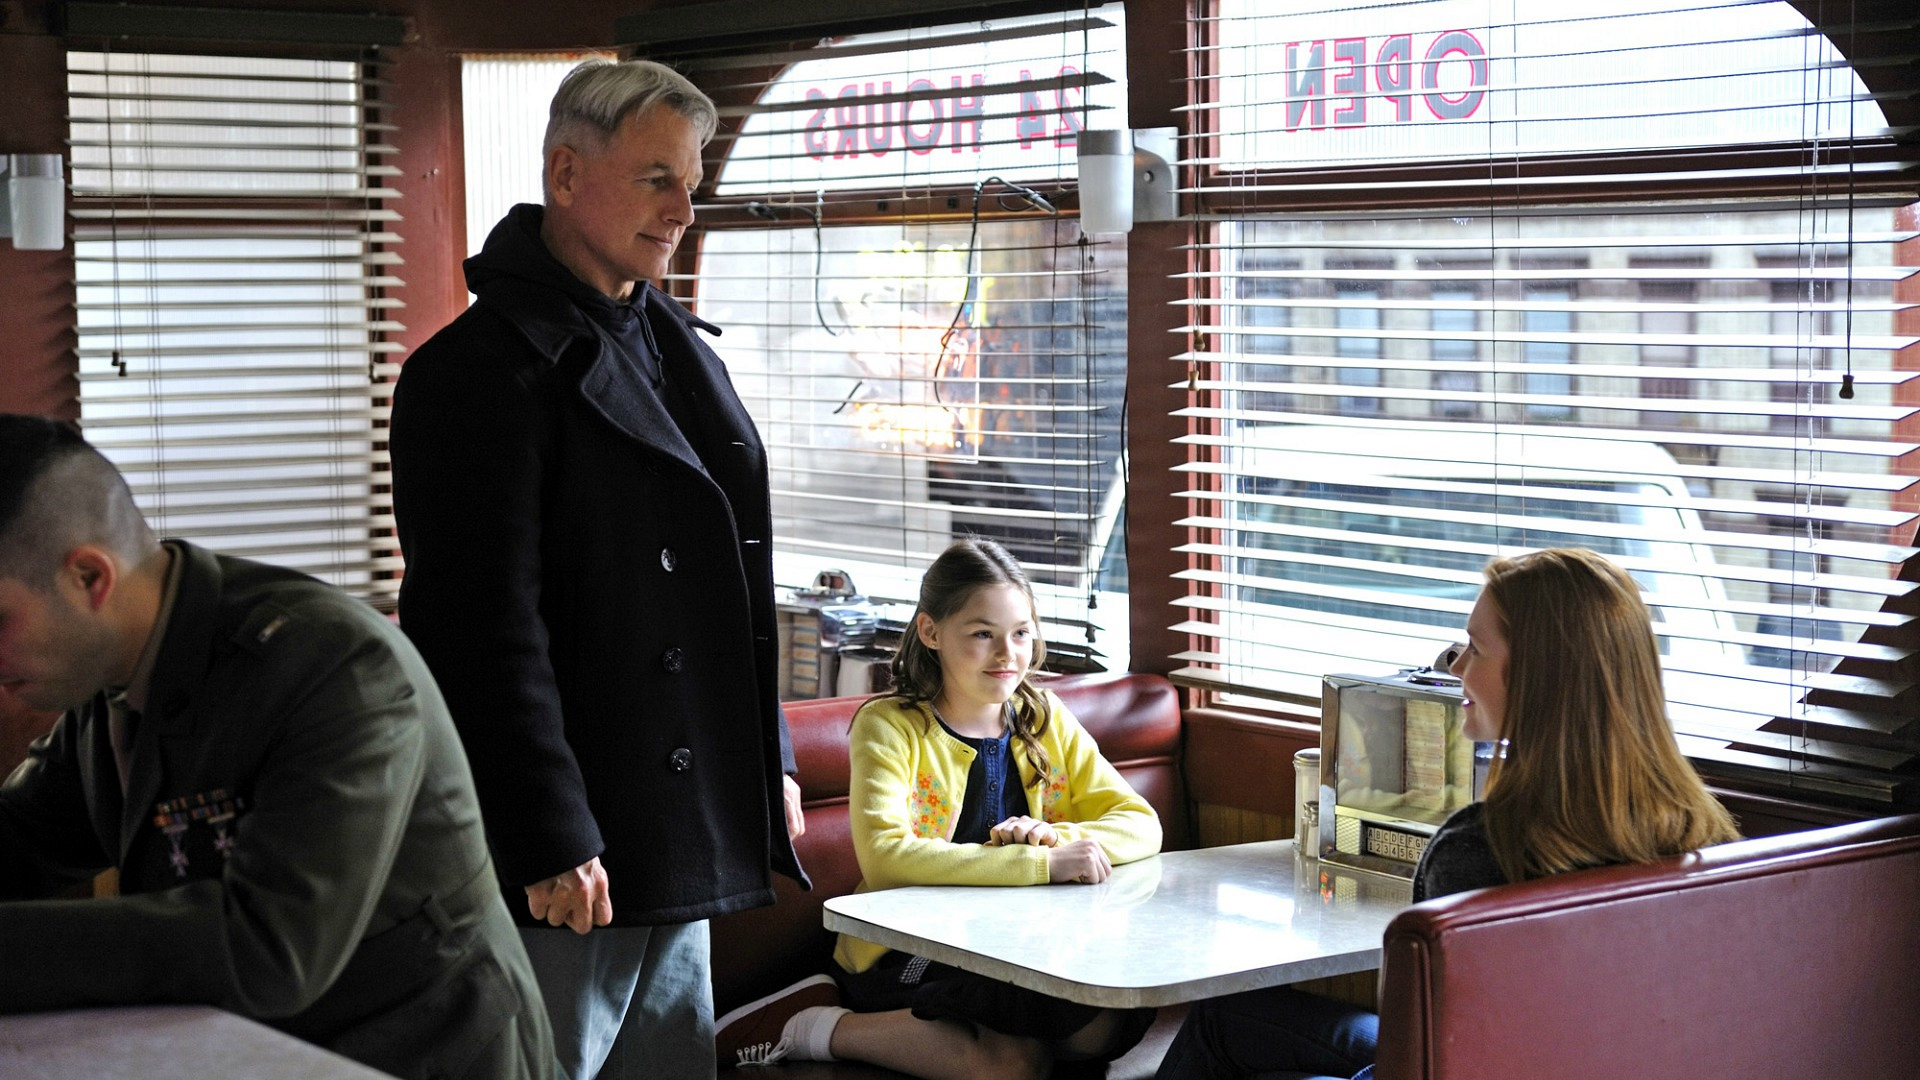 NCIS crosses the 200 episode mark